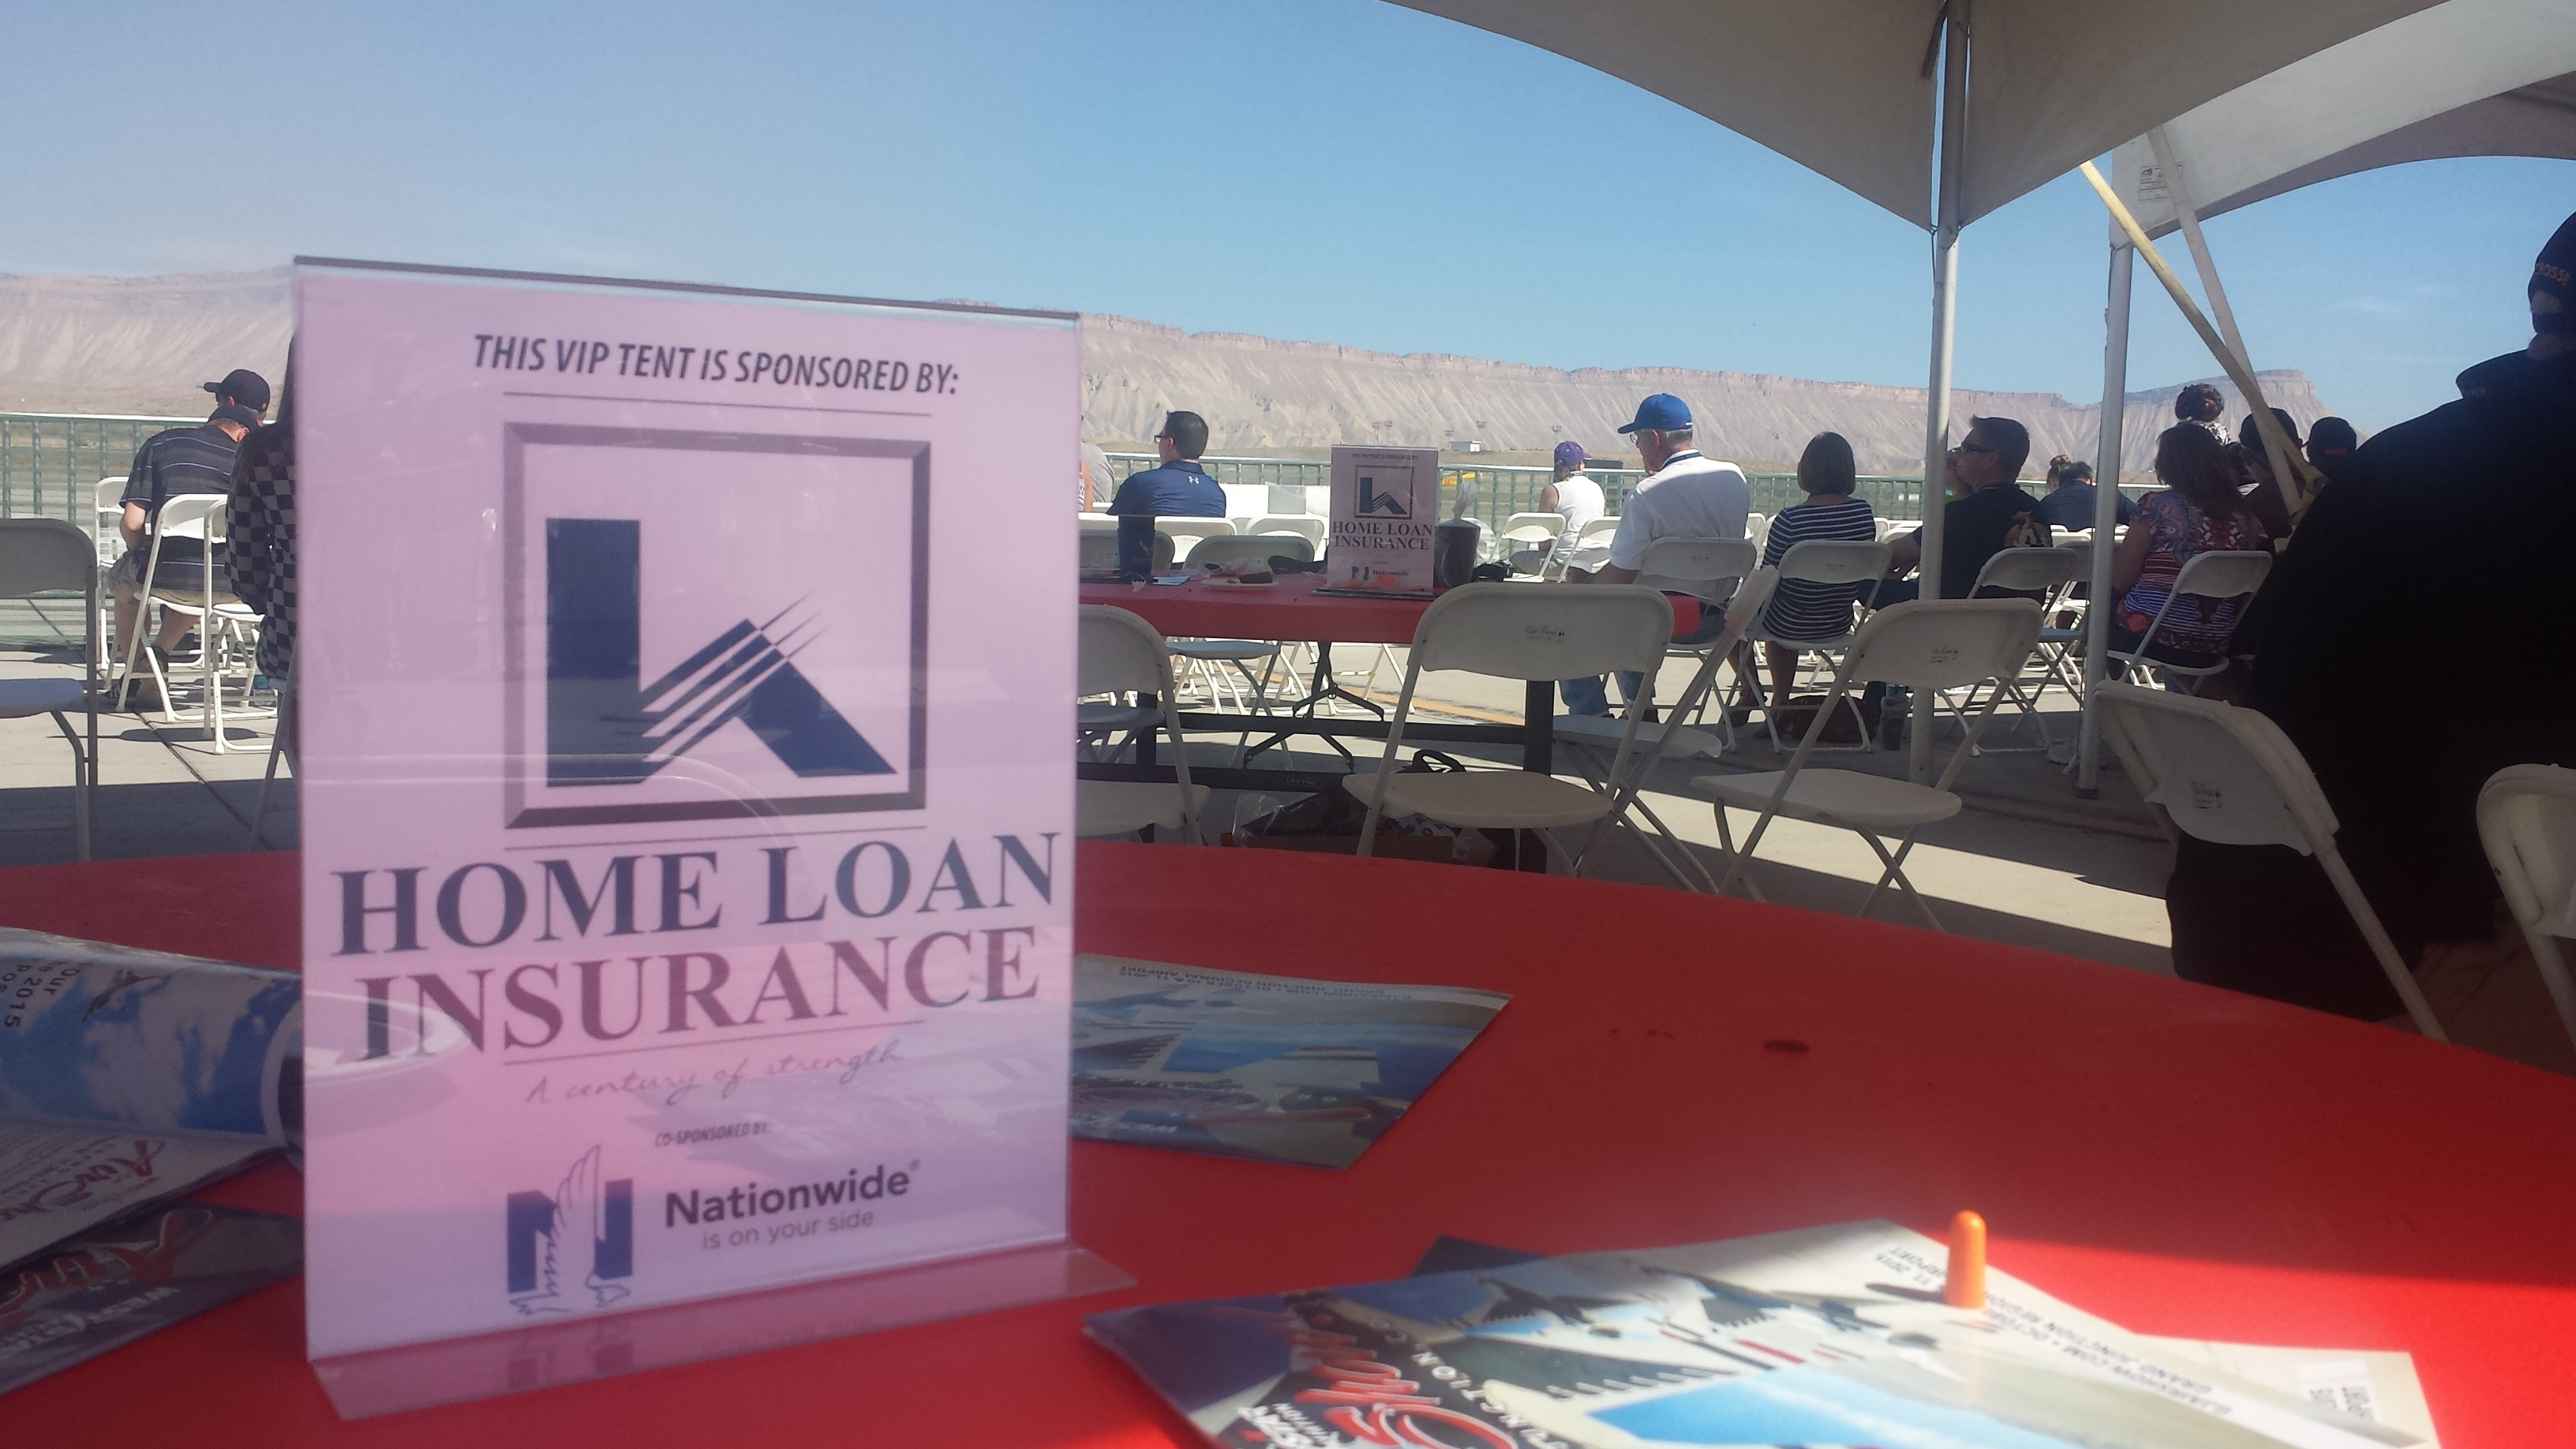 Home Loan Insurance Sponsors the Grand Junction Air Show